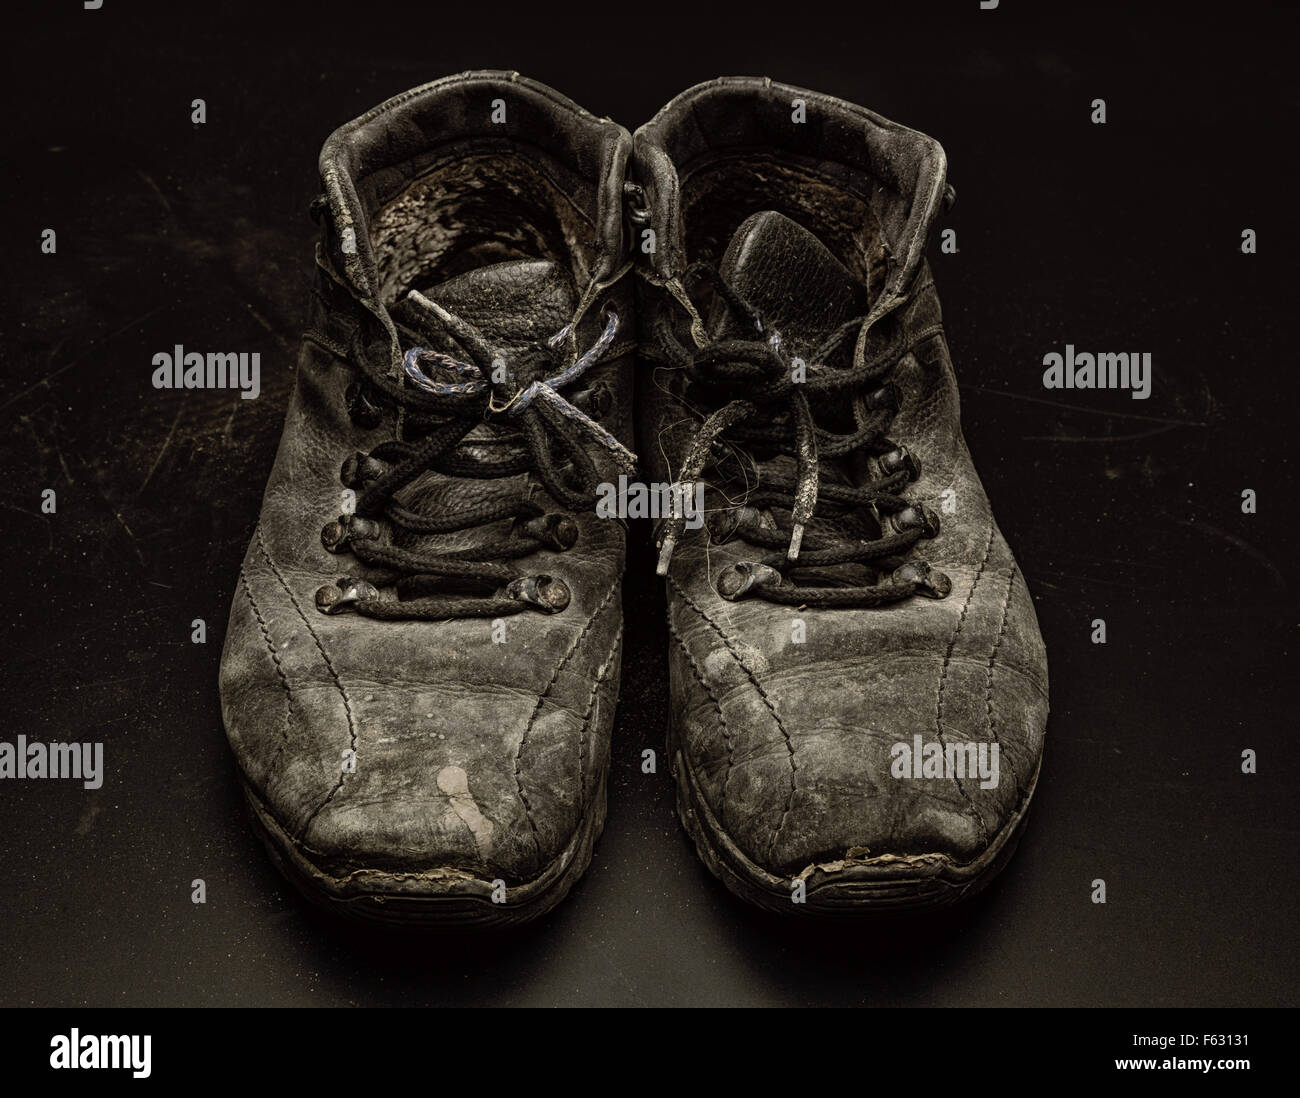 Old worn out shoes on the black floor - Stock Image